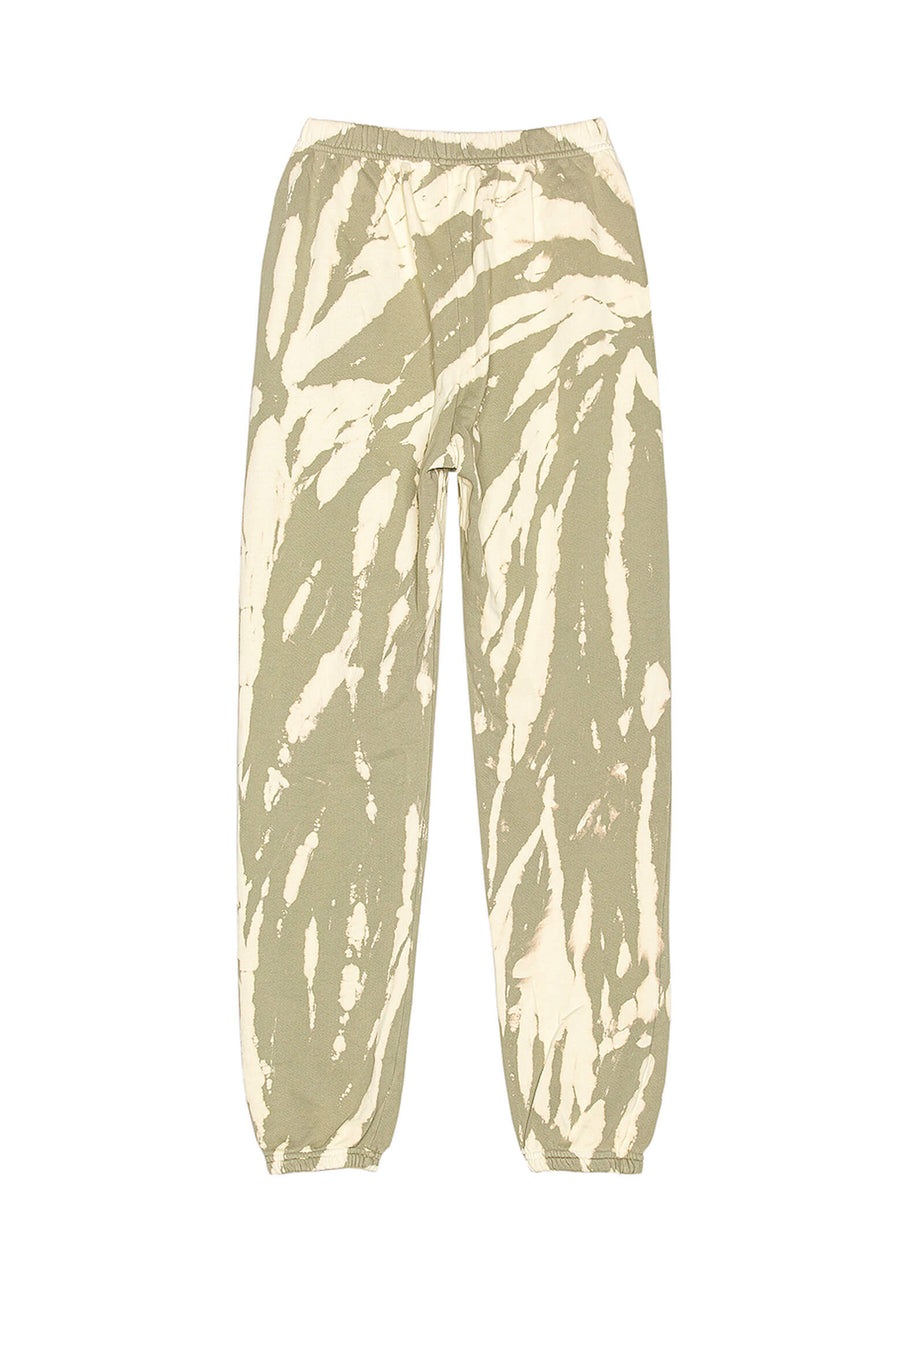 Les Tien Classic Sweatpant in Sage Tie Dye from The New Trend